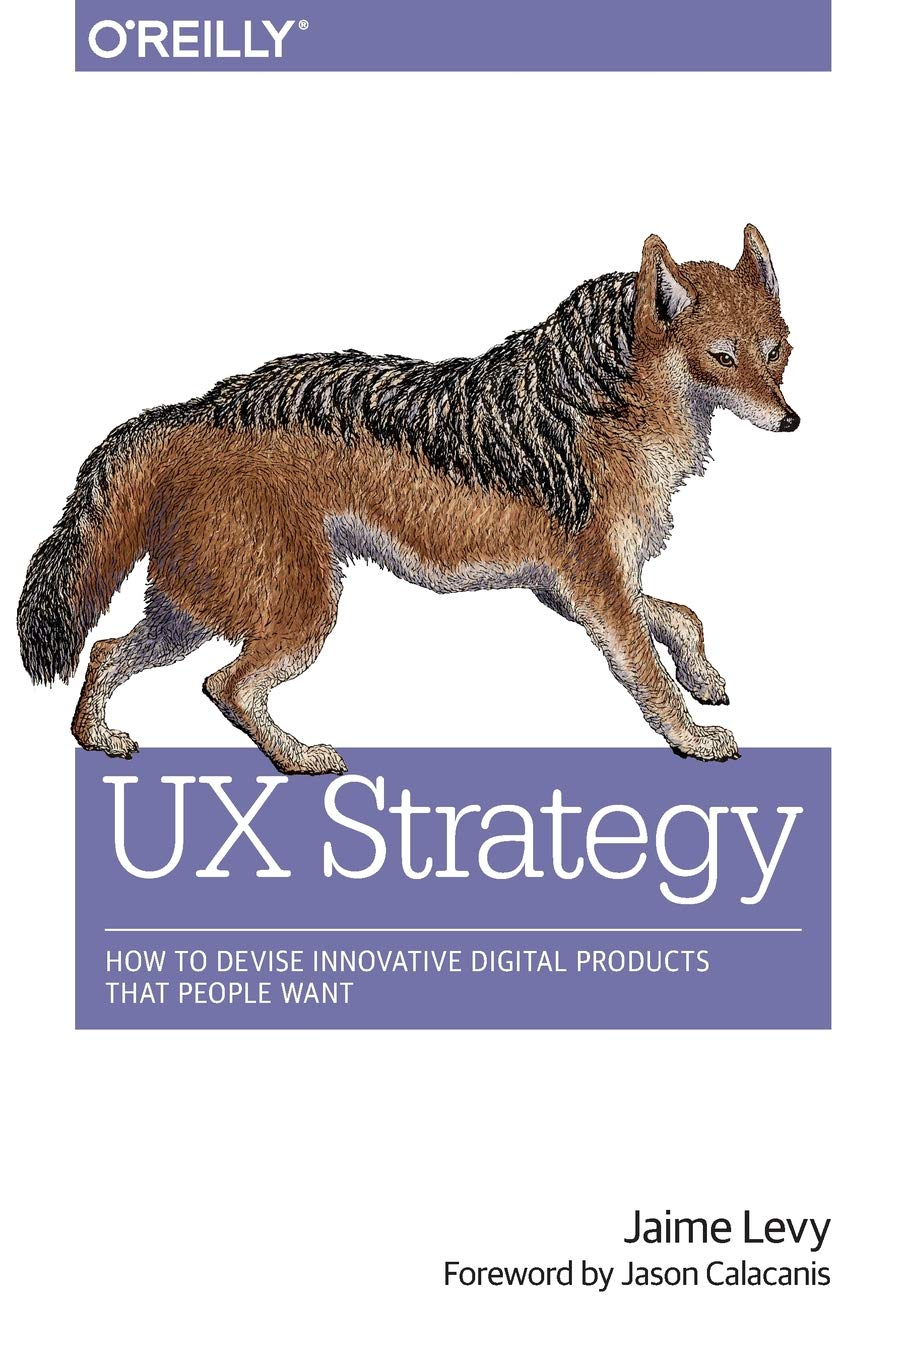 UX Strategy: How to Devise Innovative Digital Products that People Want by O'Reilly Media